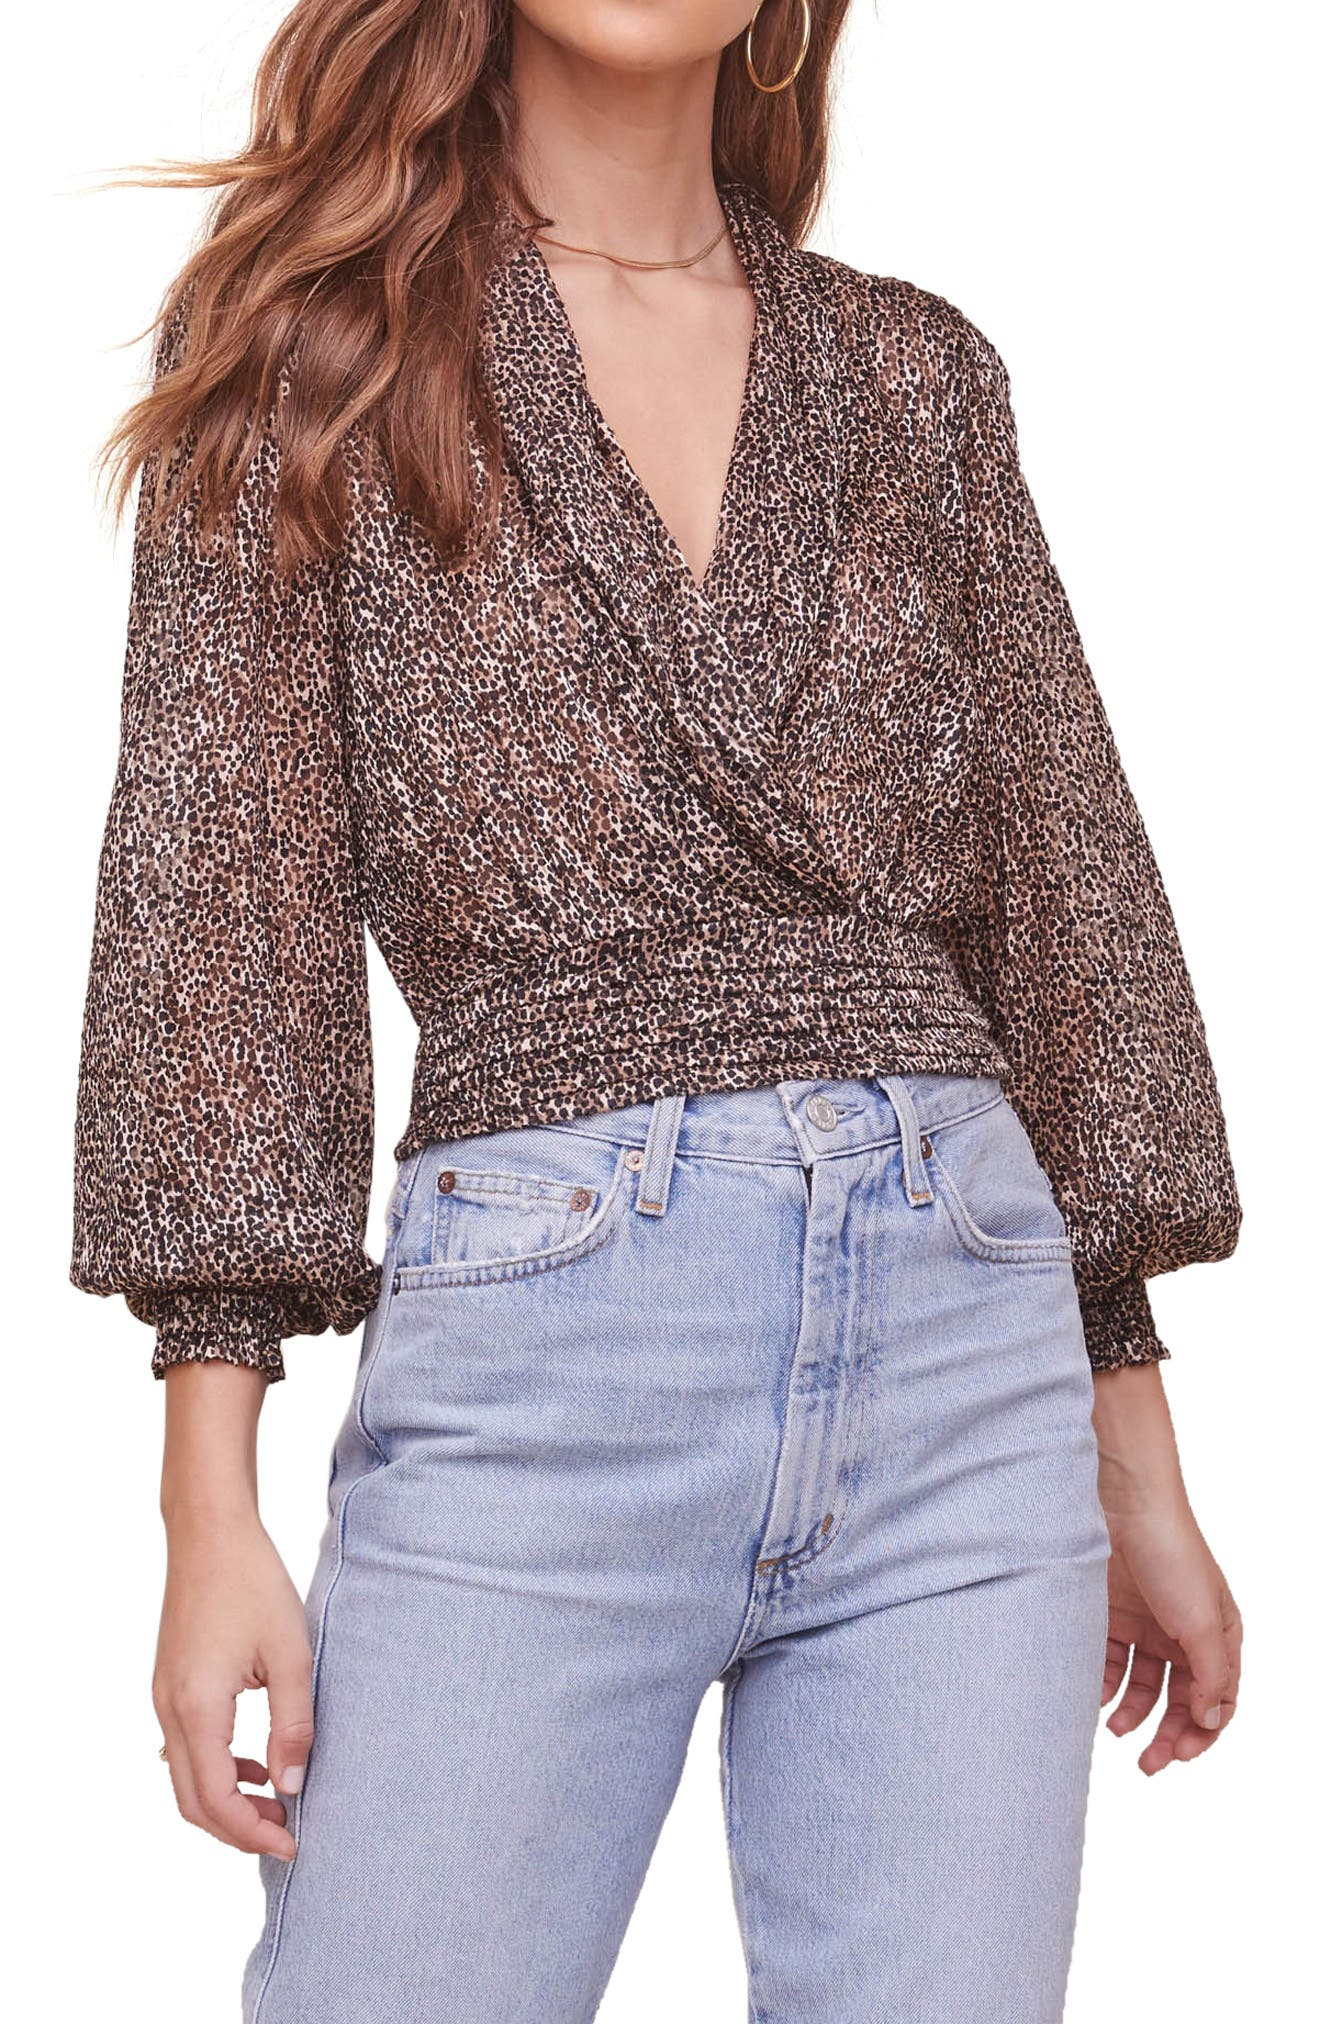 So Exotic Faux Wrap Top